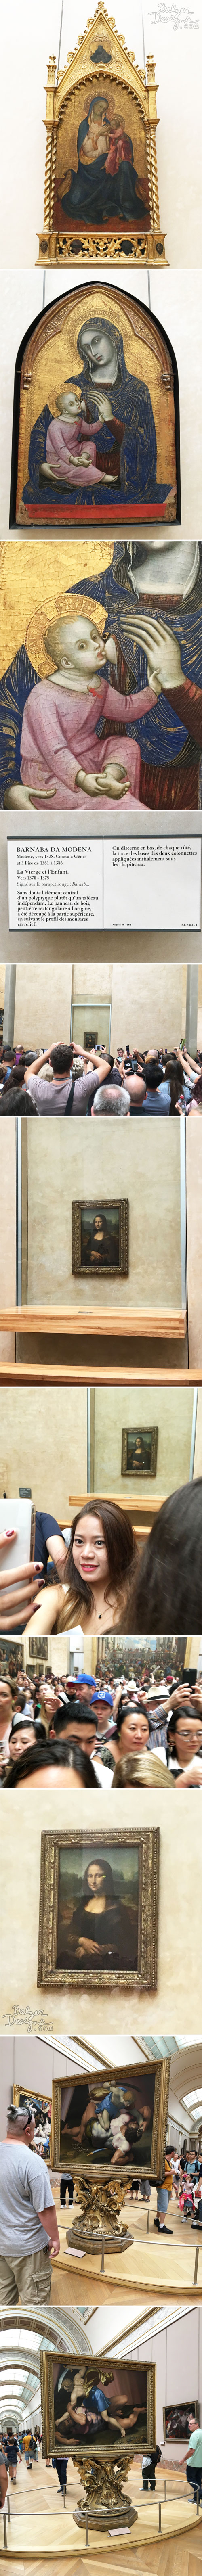 From the Balzer Designs Blog: Louvre: Part Two